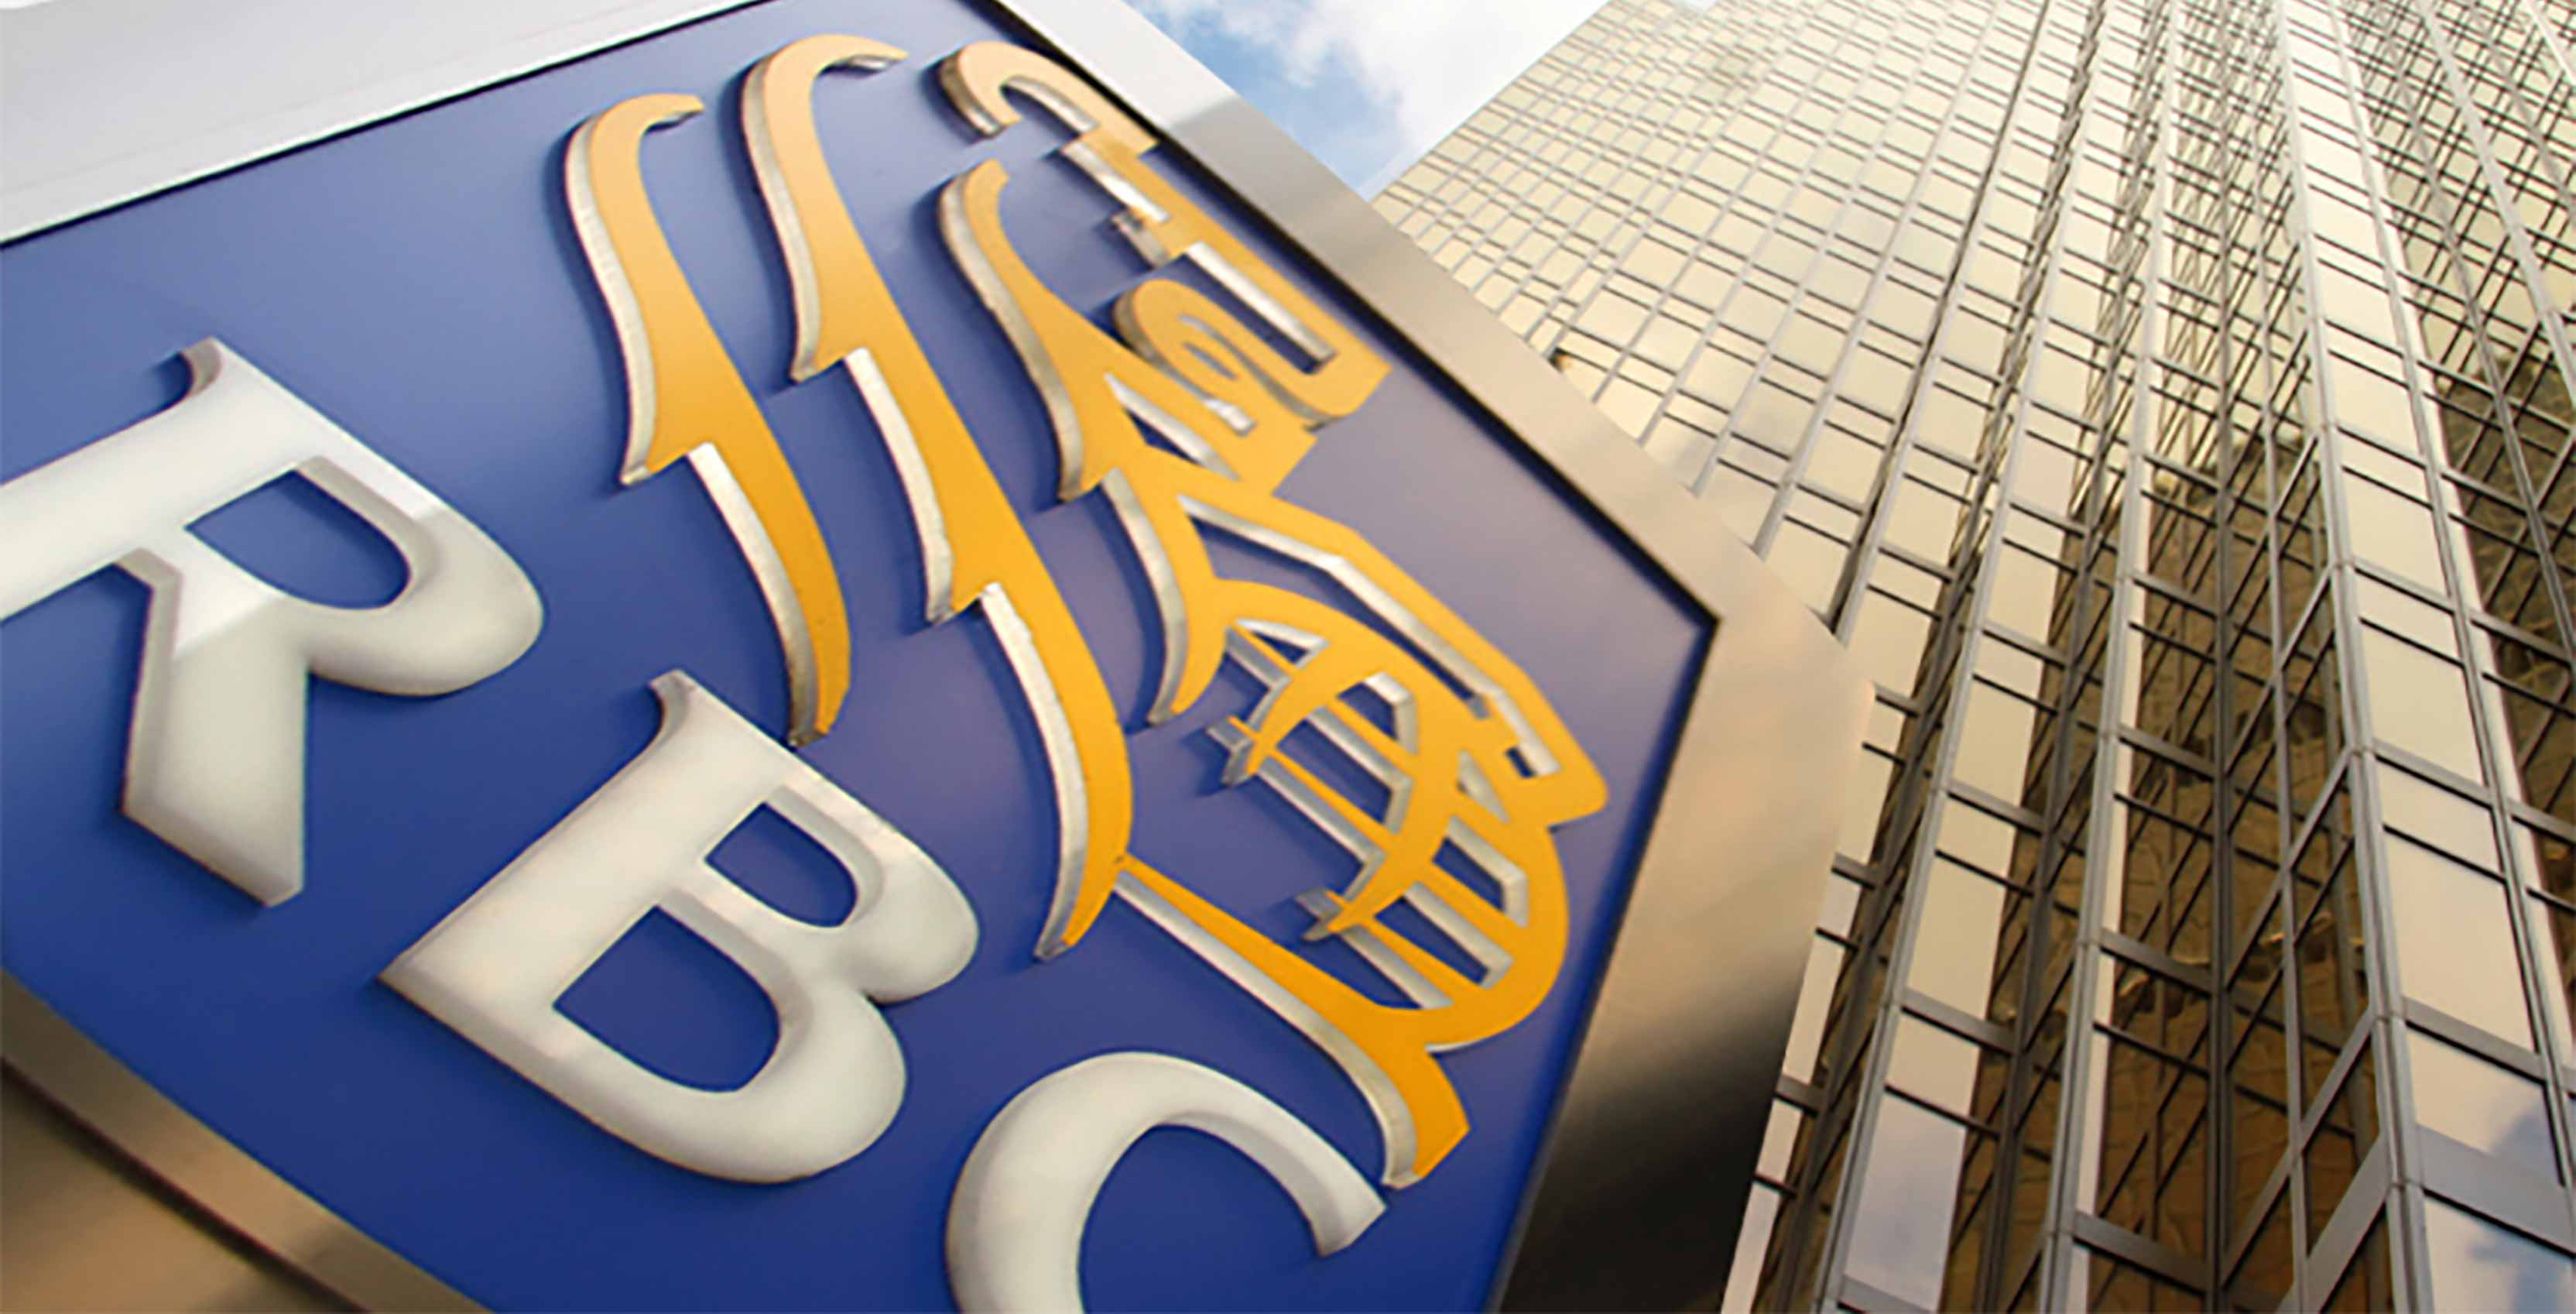 RBC logo in front of office building - RBC e-transfer